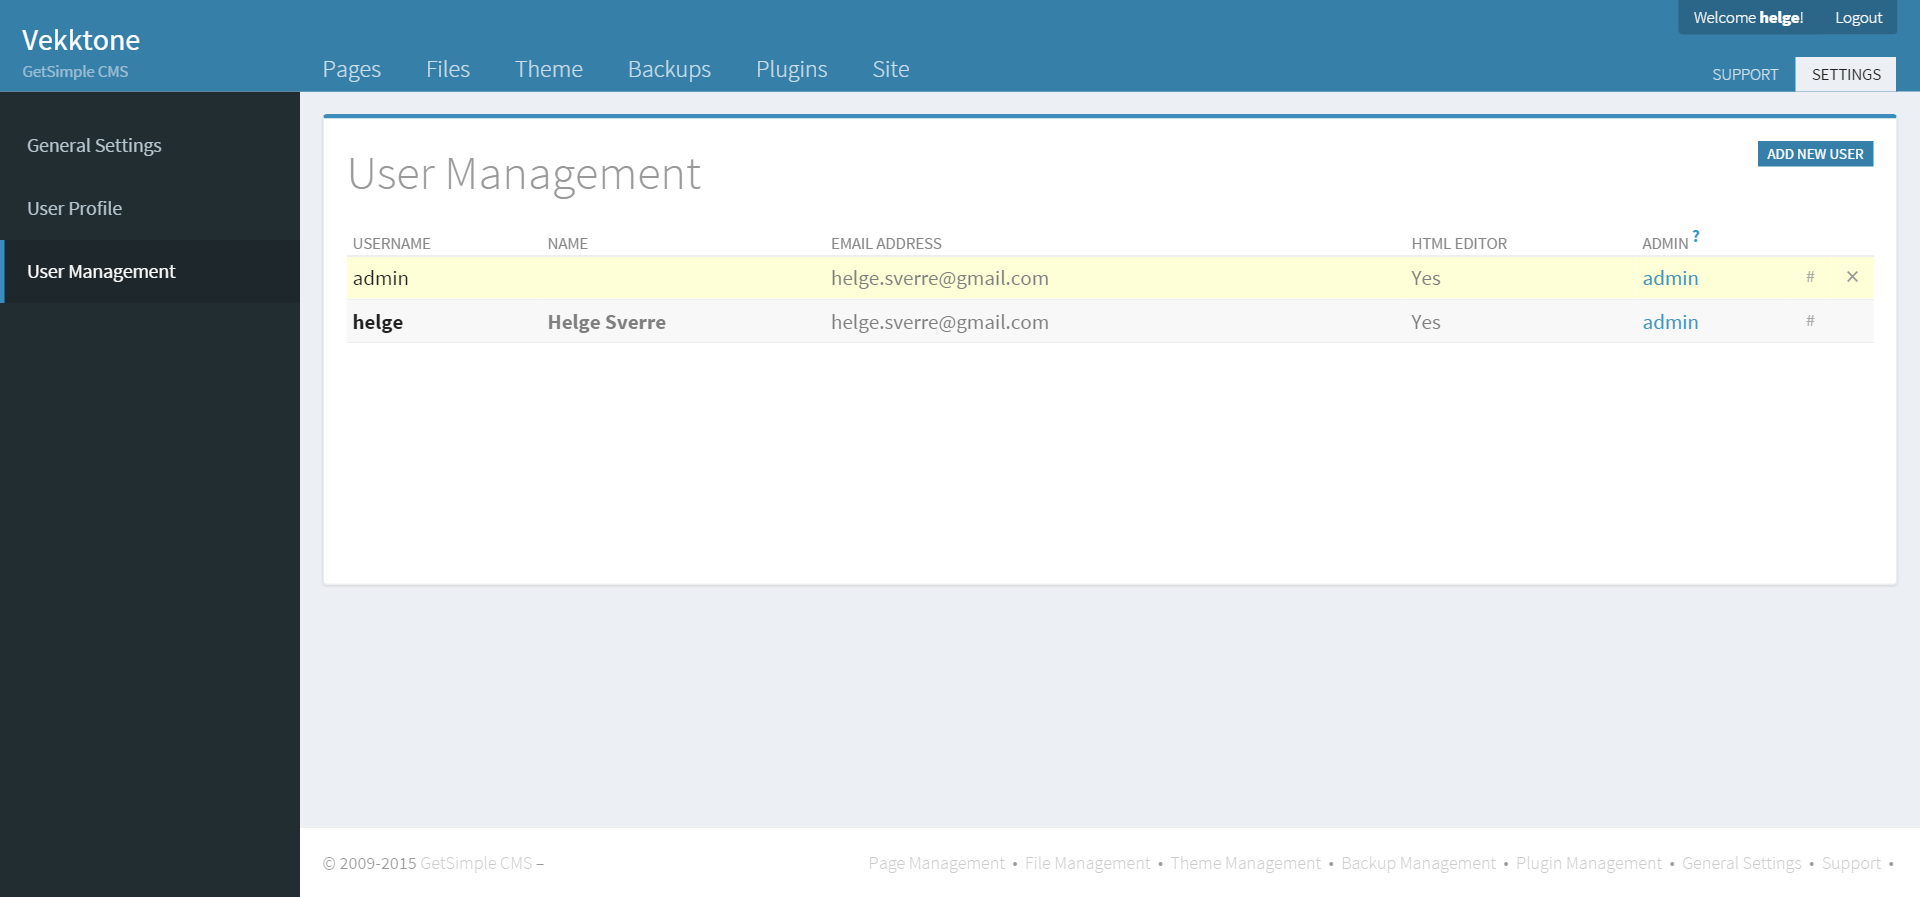 User management in GetSimple CMS